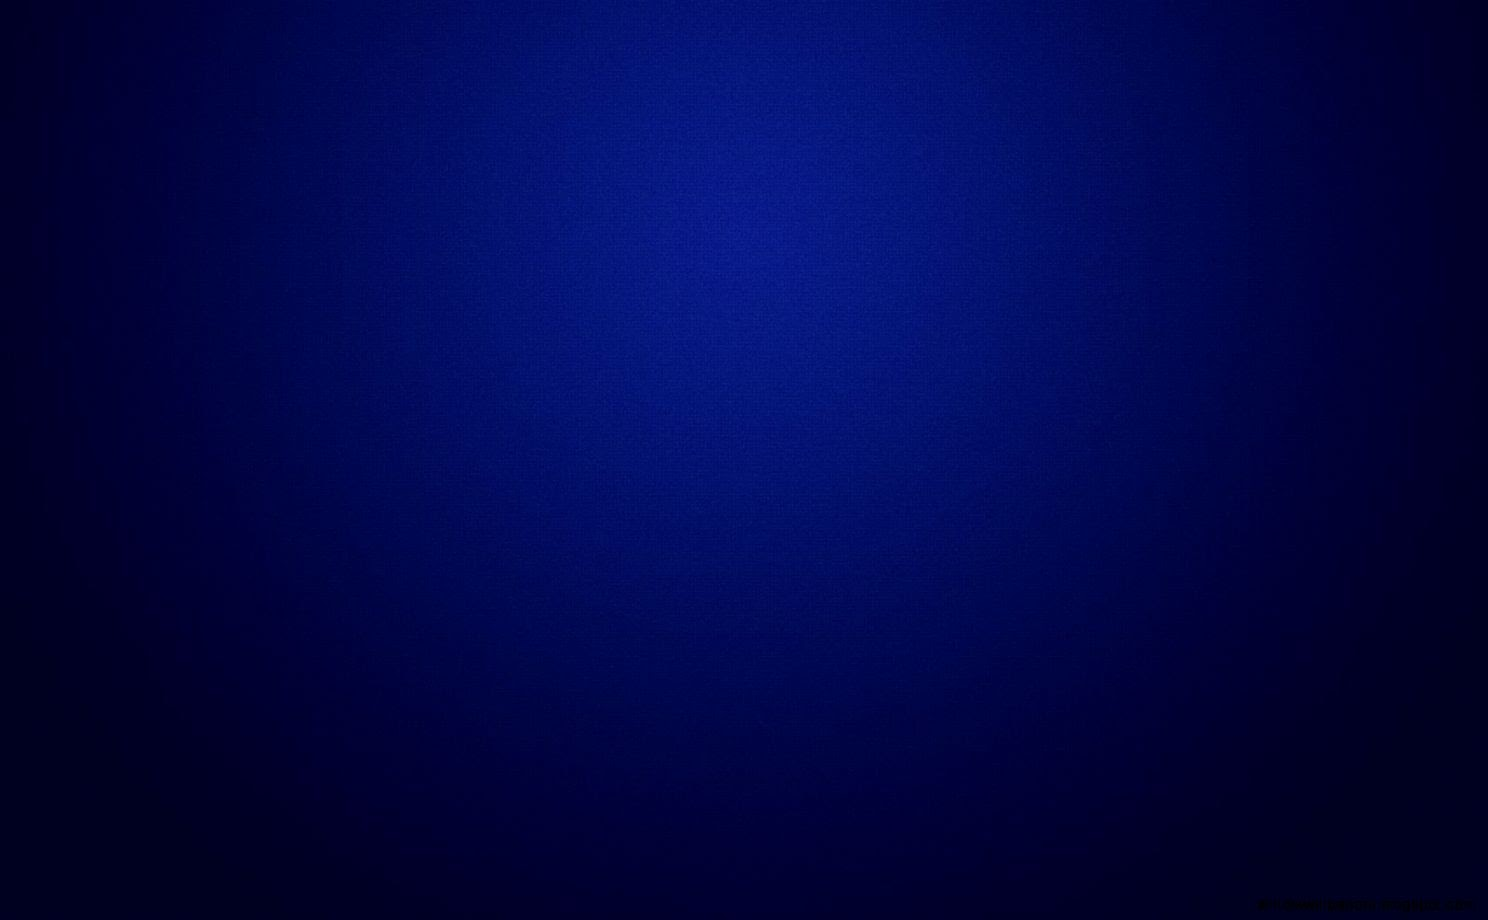 Dark blue wallpaper for android all hd wallpapers - Dark blue wallpaper hd for android ...